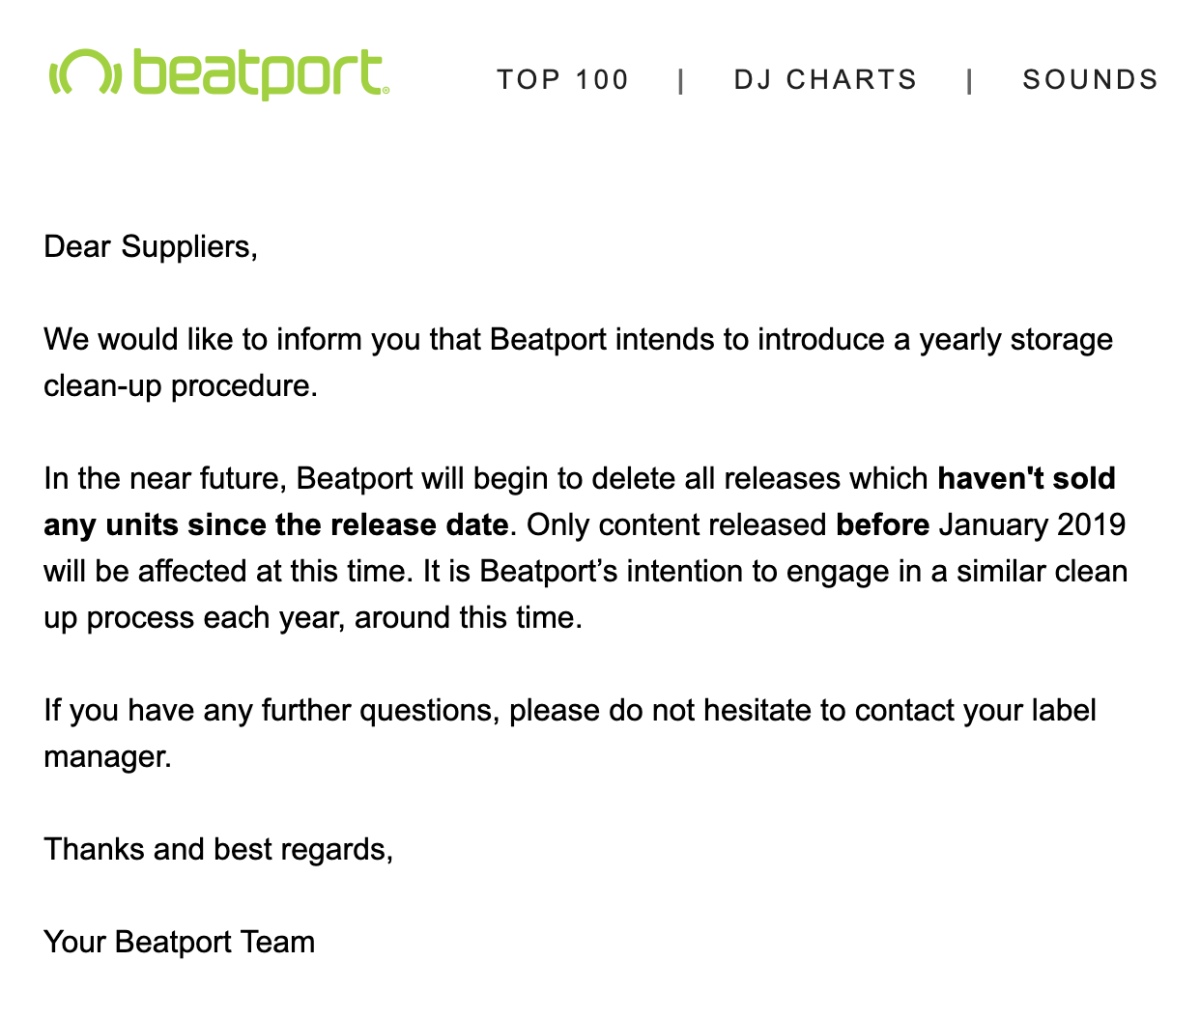 Beatport statement sent to music suppliers